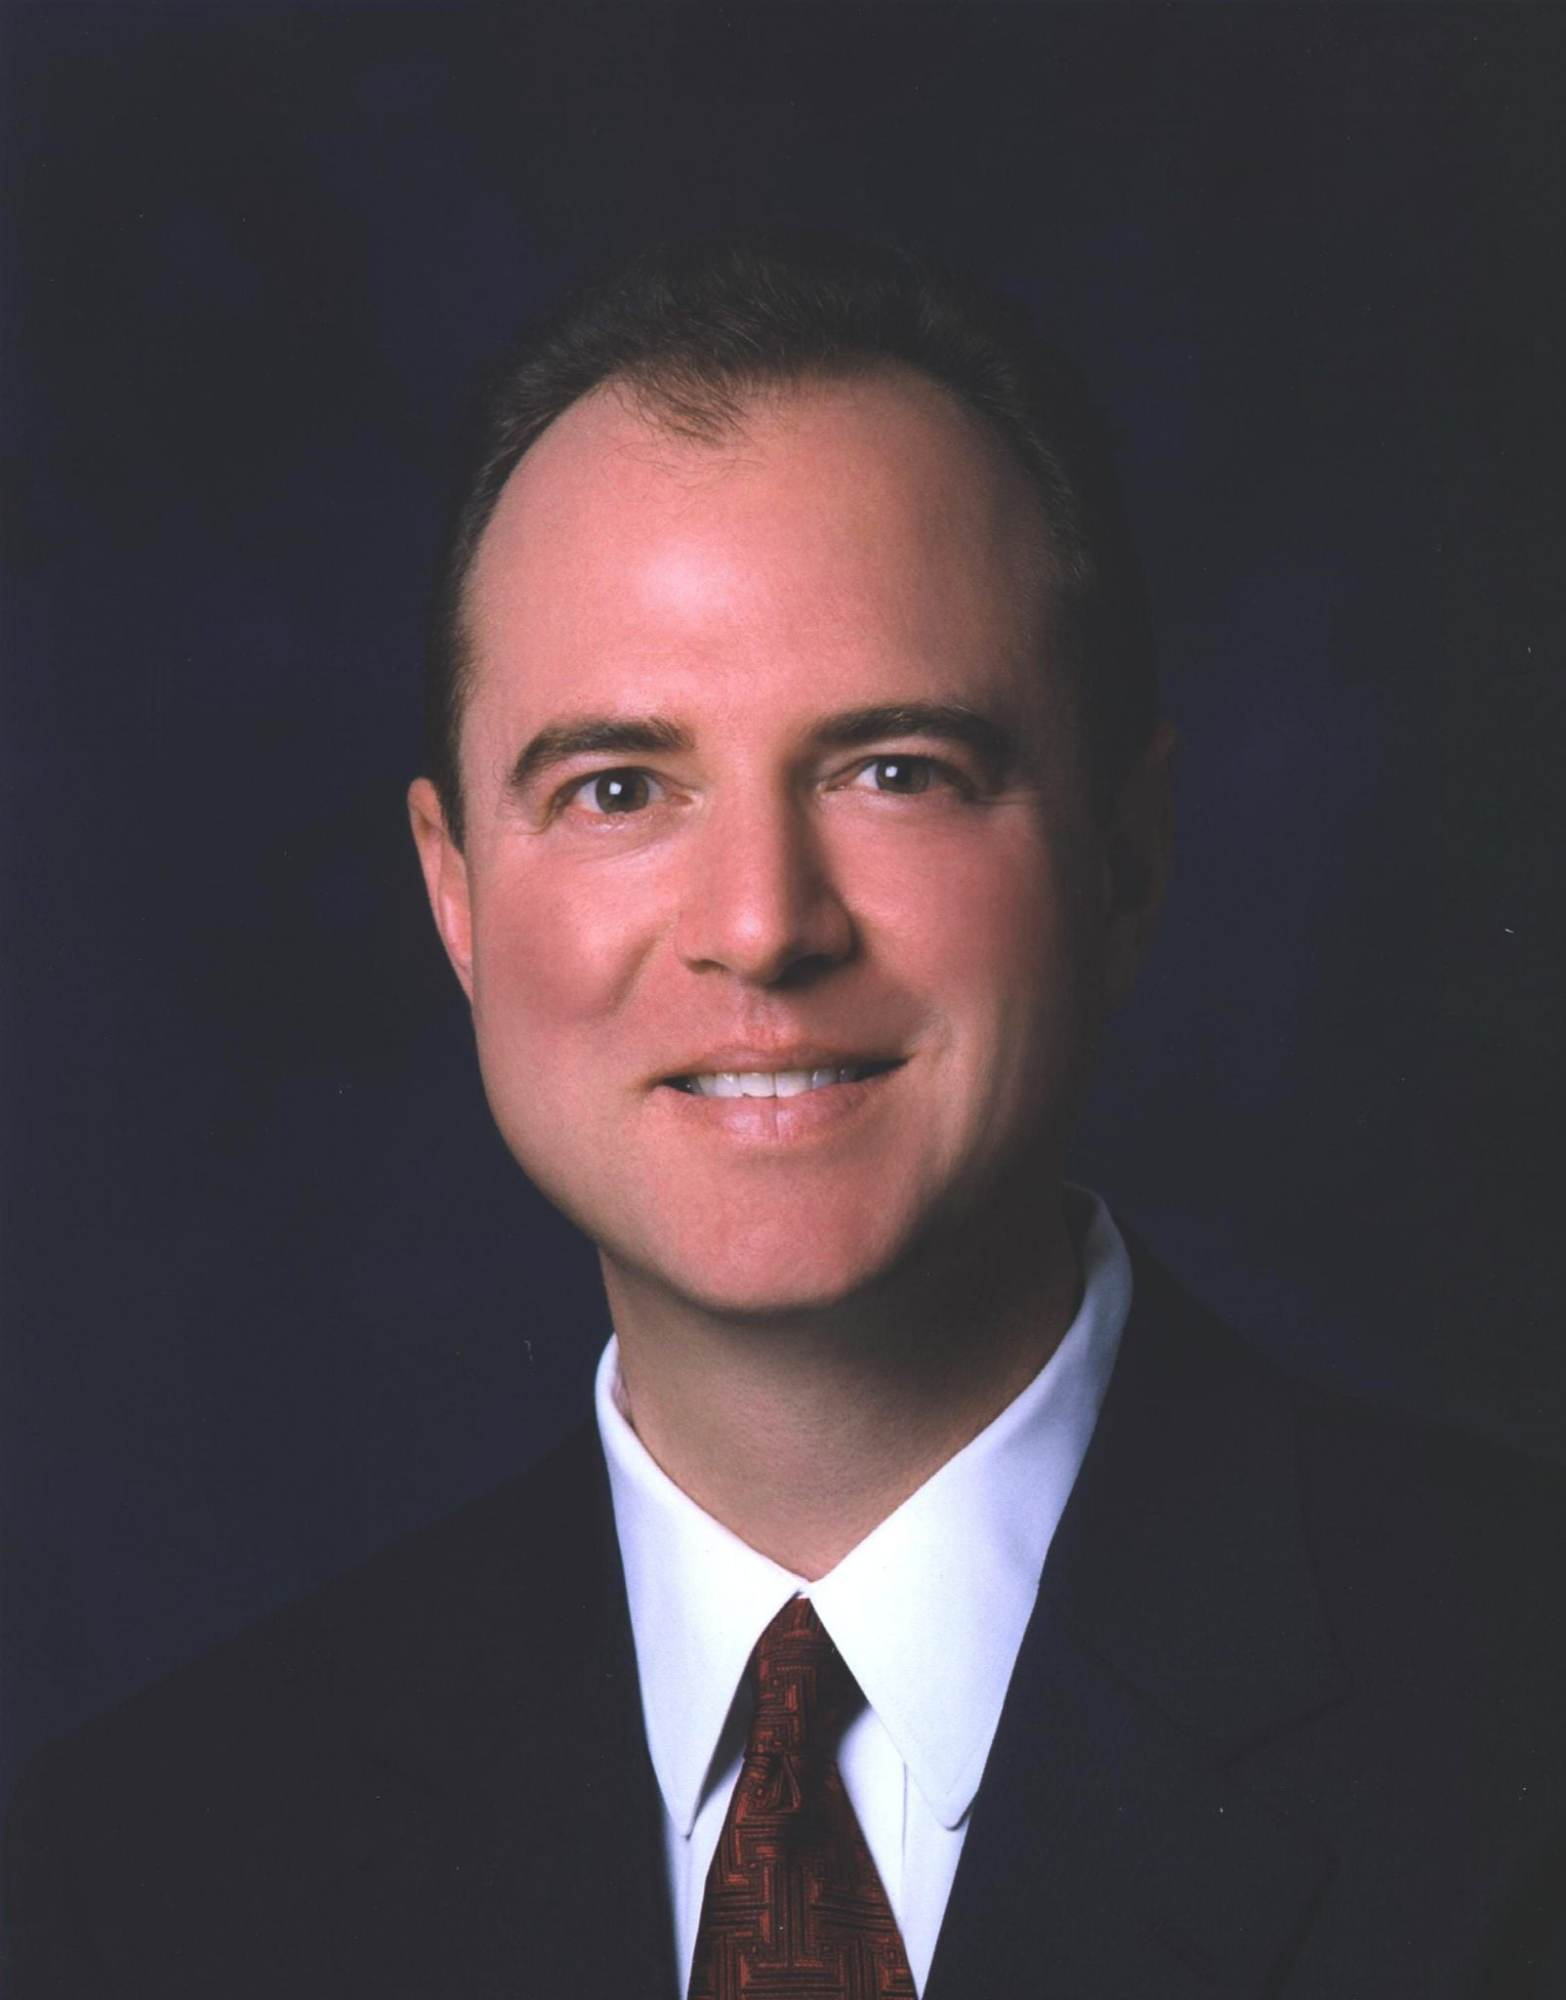 Schiff Introduces Constitutional Amendment To Overturn Citizens United